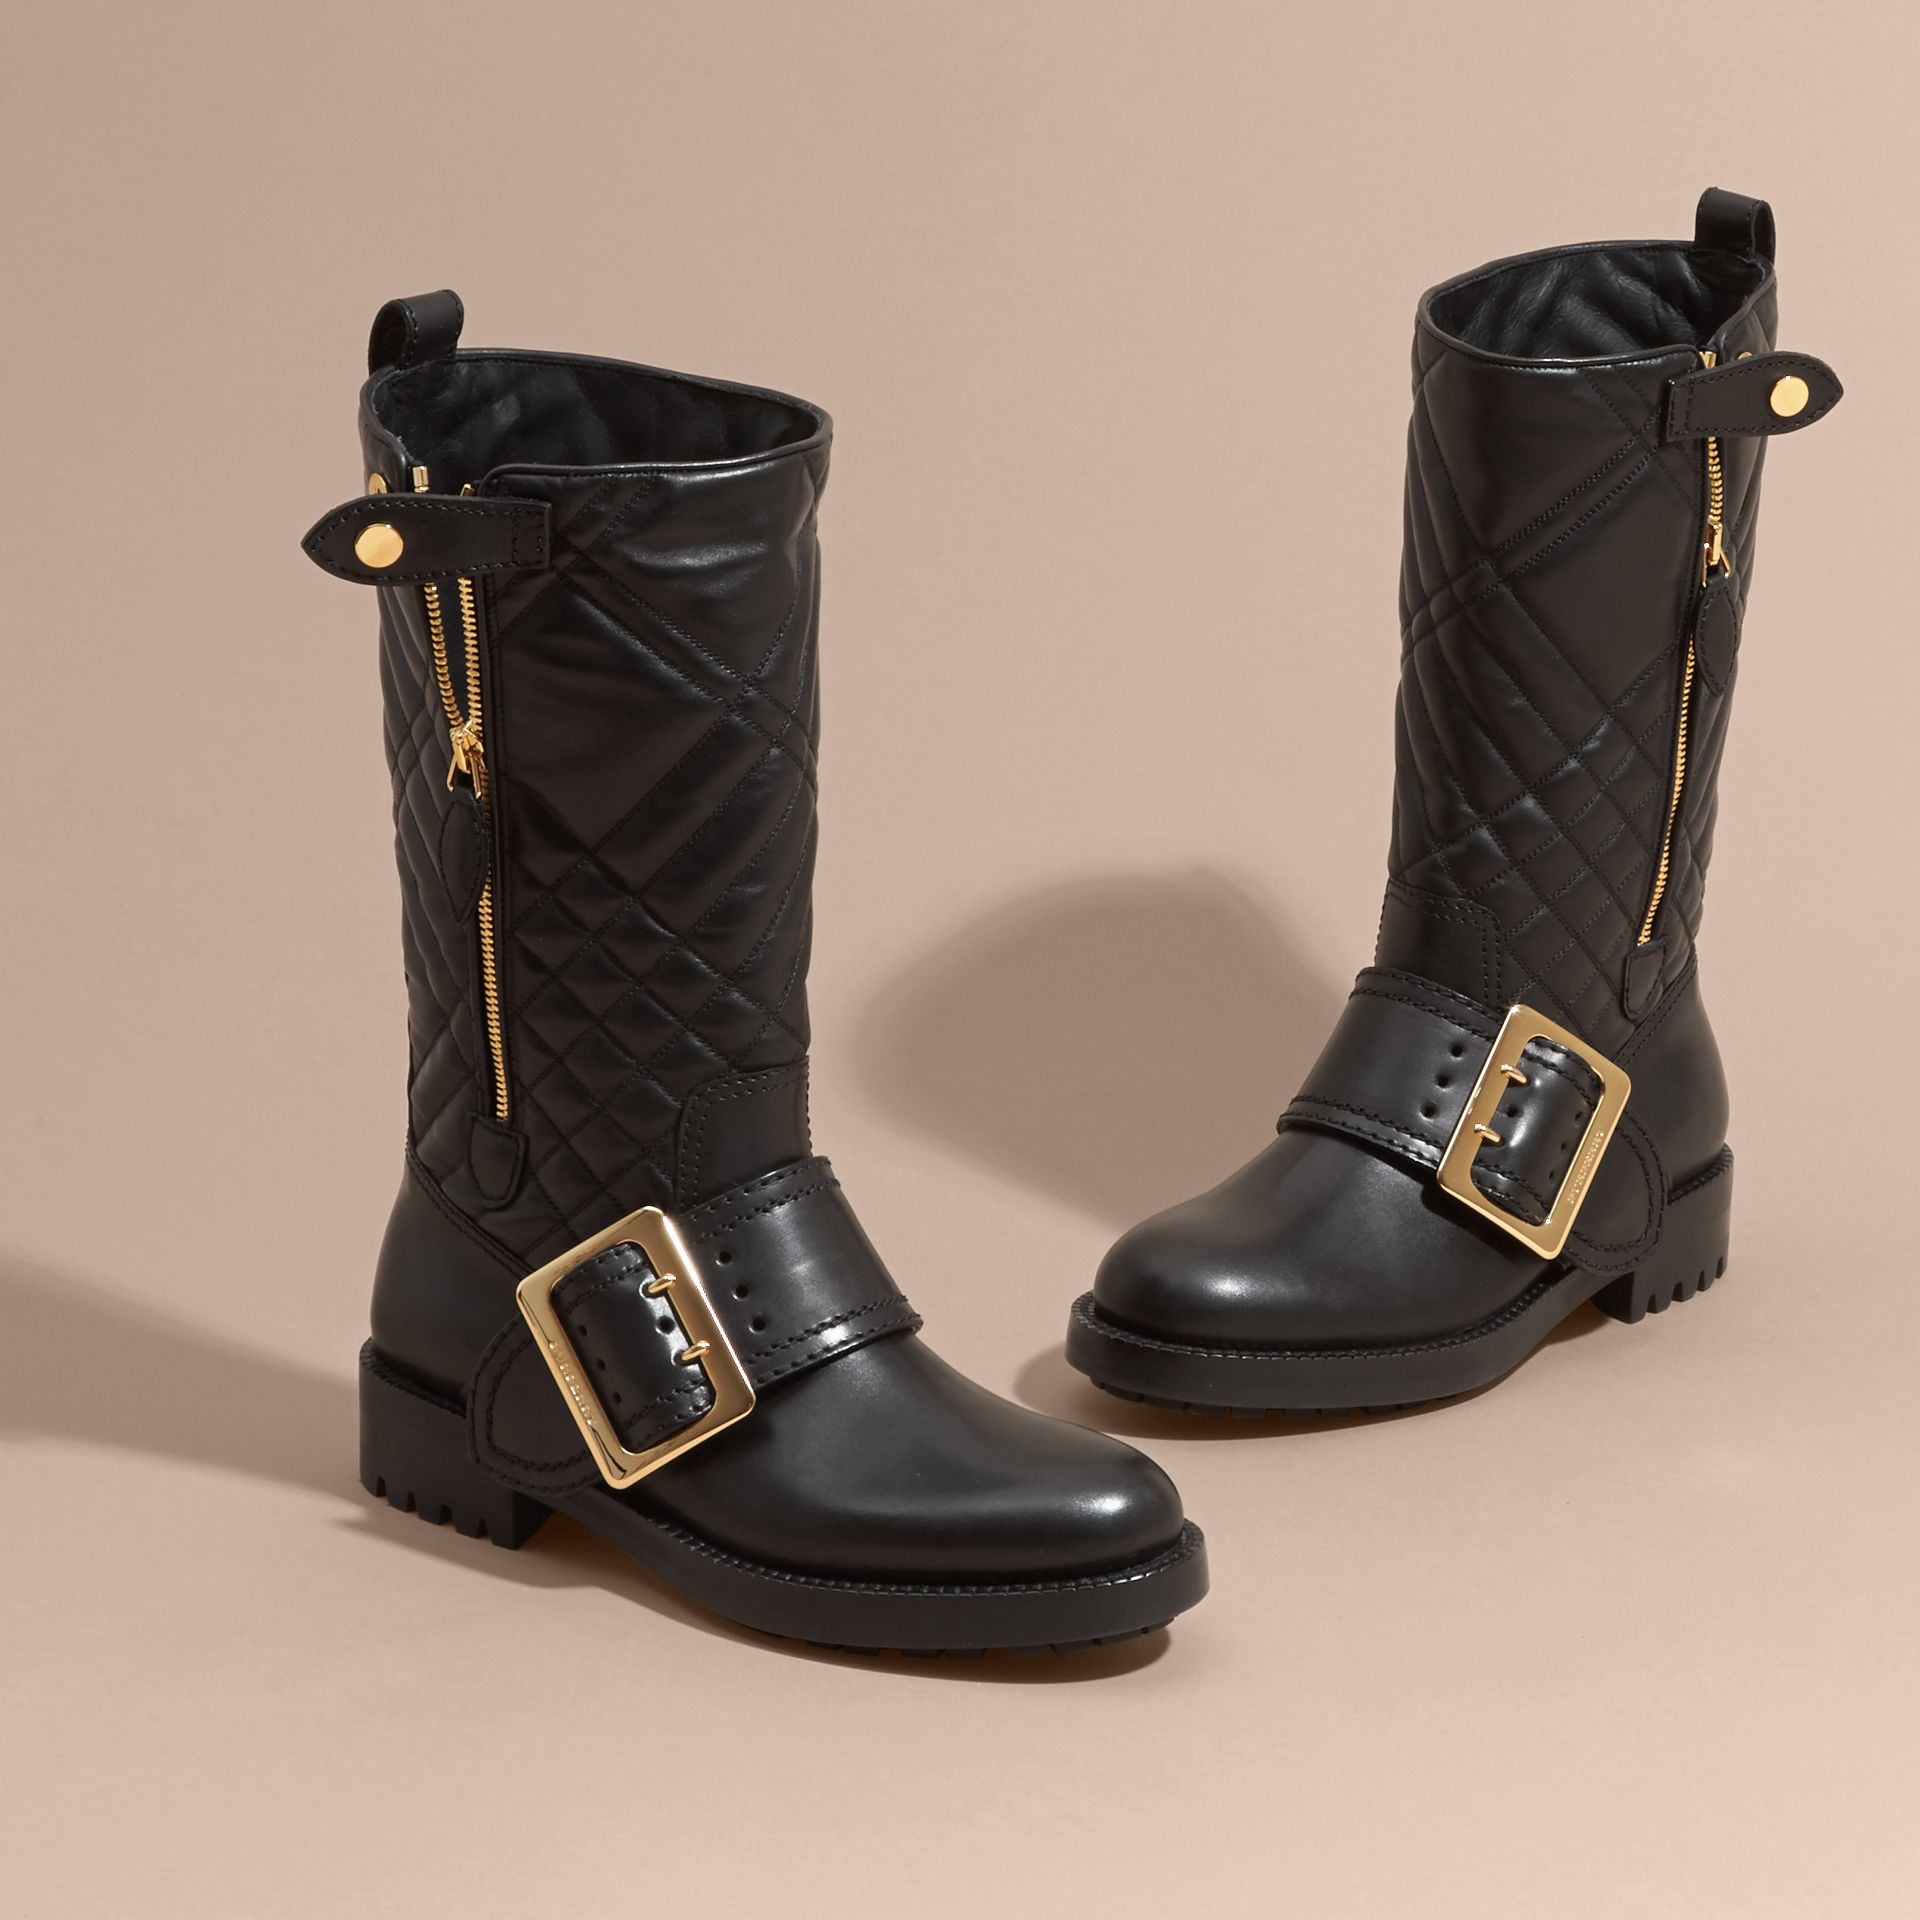 Buckle Detail Check Quilted Leather Boots in Black - Women | Burberry - gallery image 3